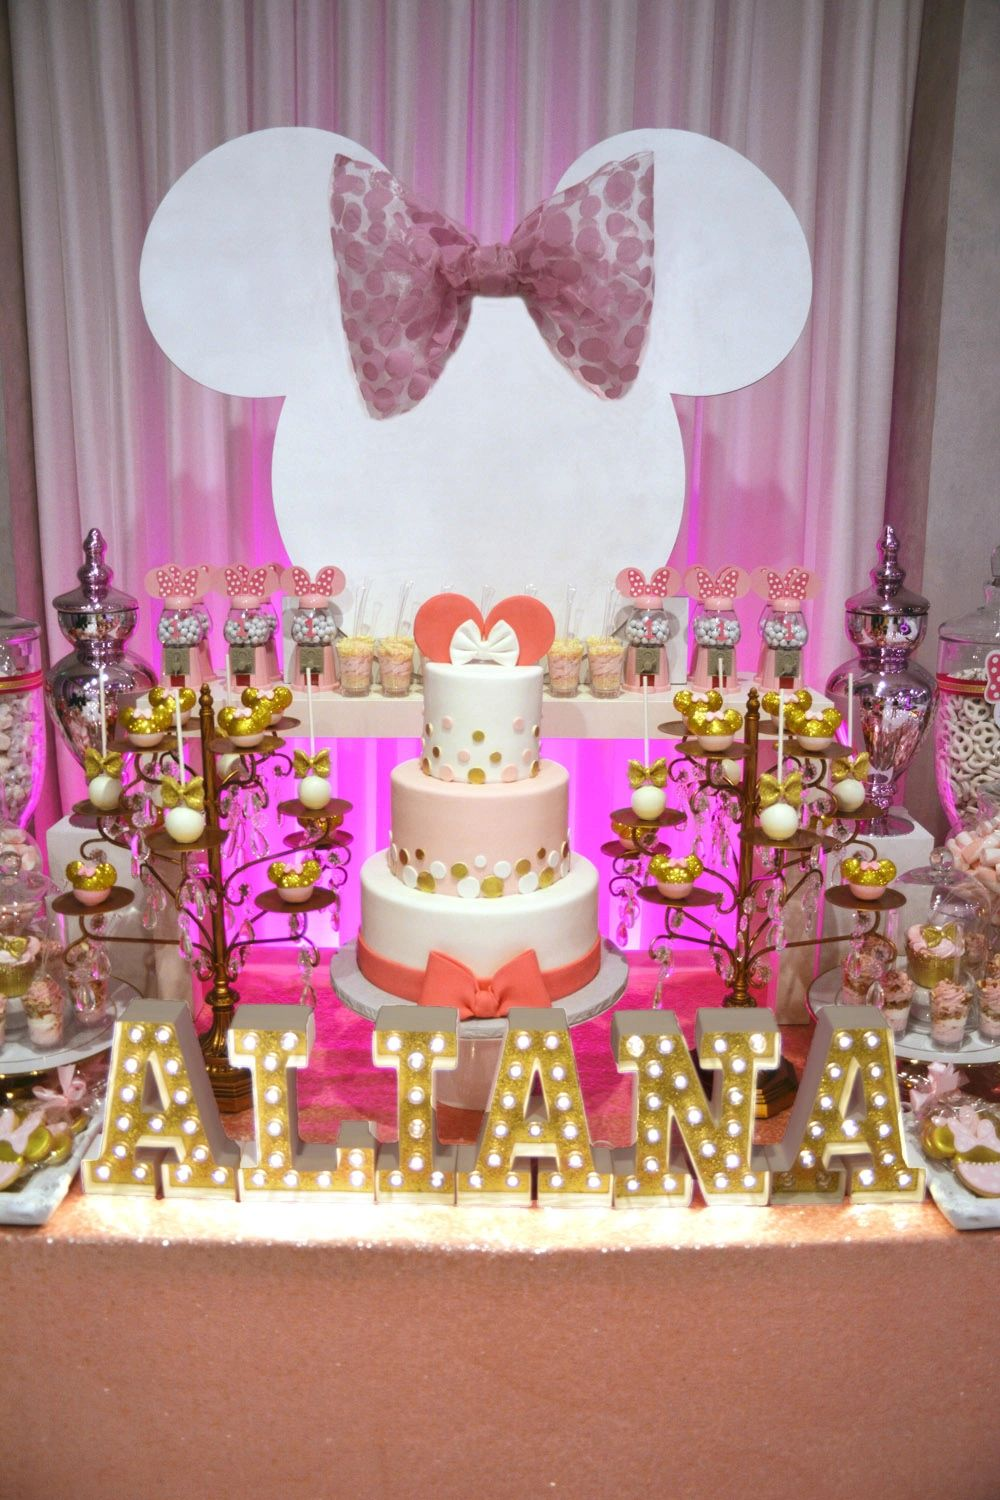 Pink And Gold Minnie Mouse Table Decorations from img1.wsimg.com